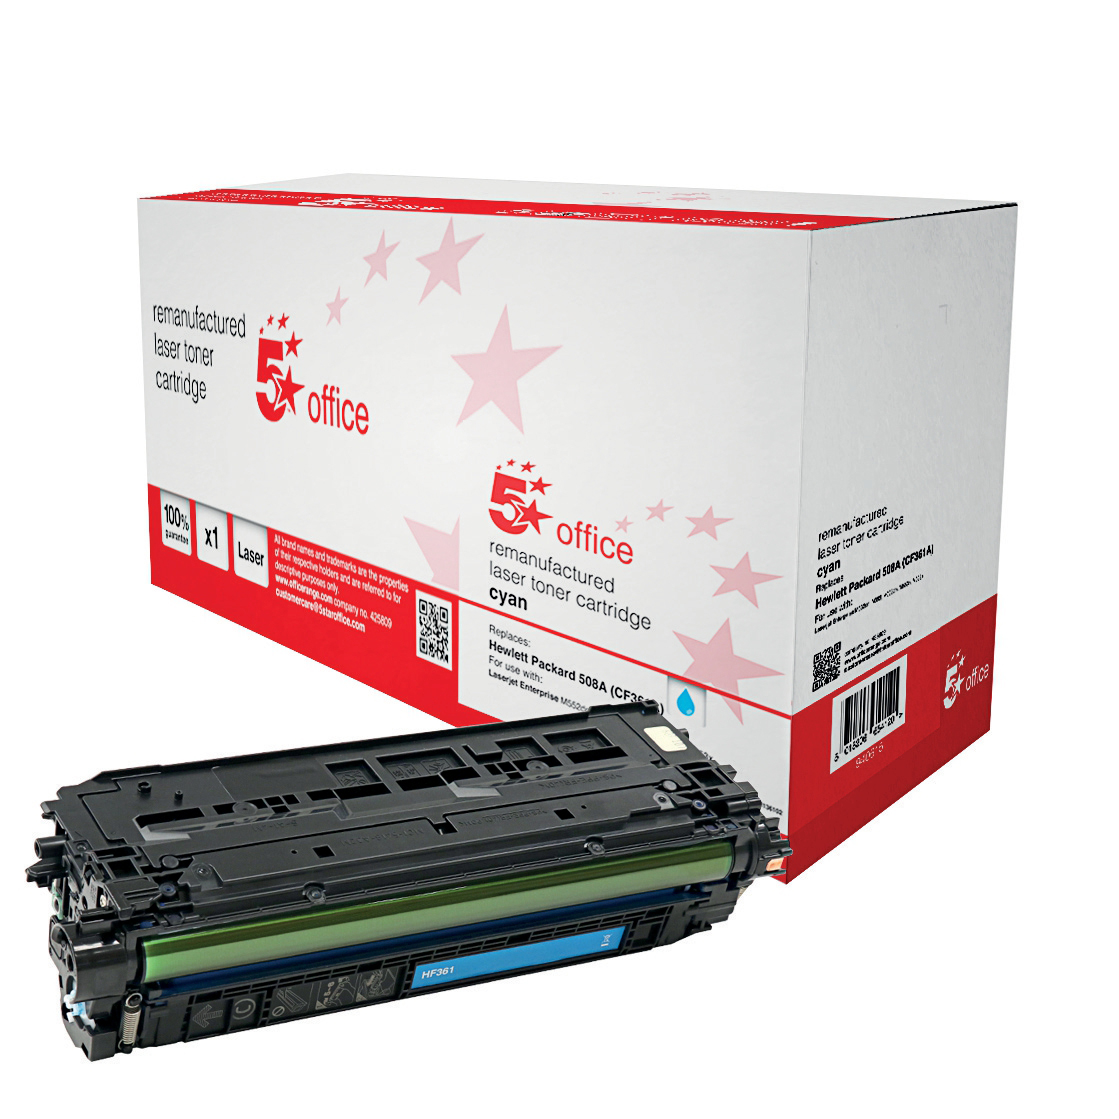 5 Star Office Remanufactured Laser Toner Cartridge Page Life 5000pp Cyan [HP 508A CF361A Alternative]